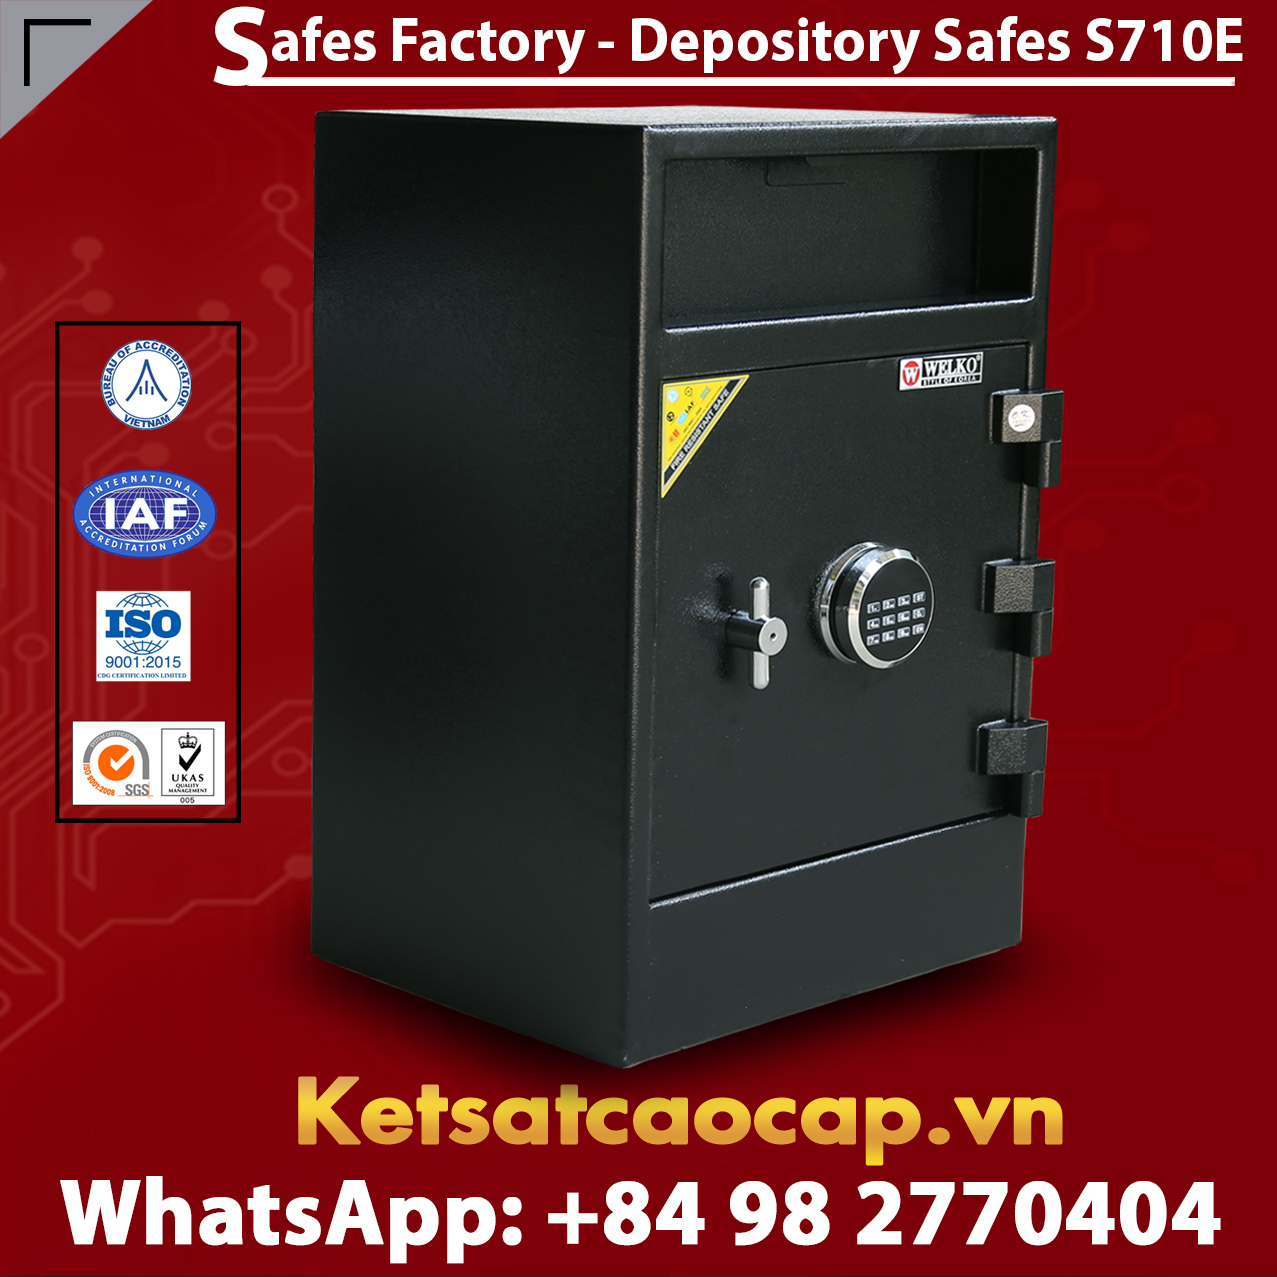 Depository Safes S710E with Best Price